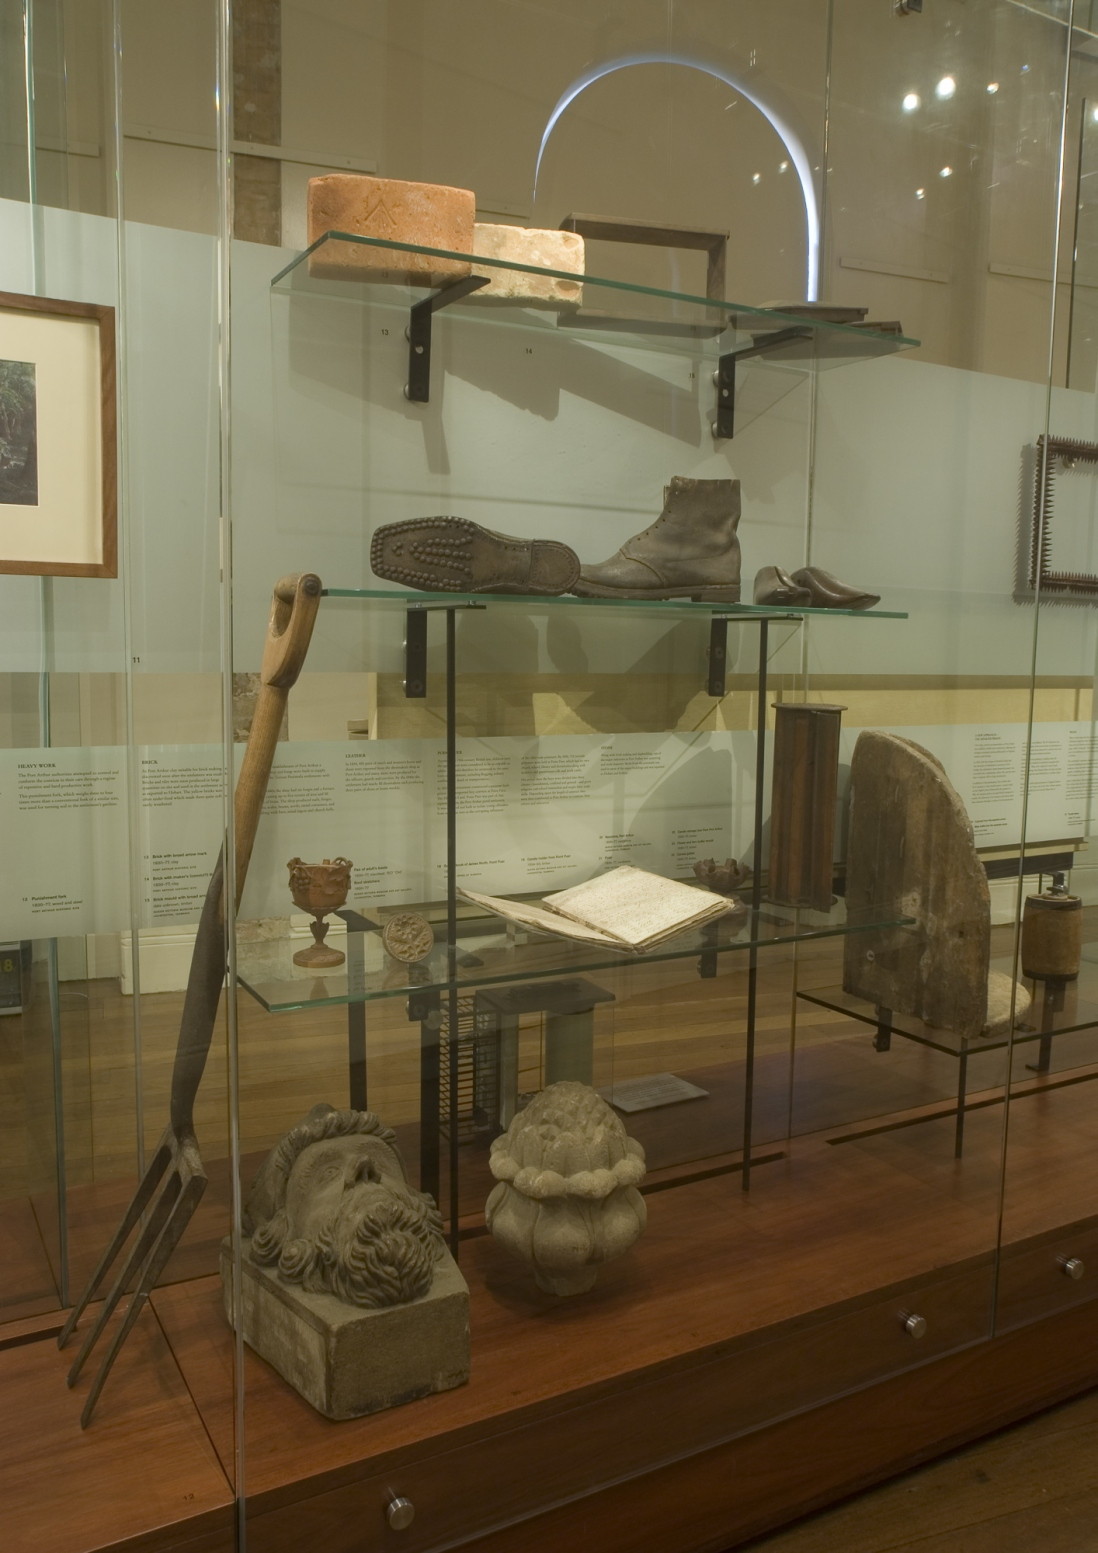 Documentation of Convicts: sites of punishment exhibition showing building tools and objects